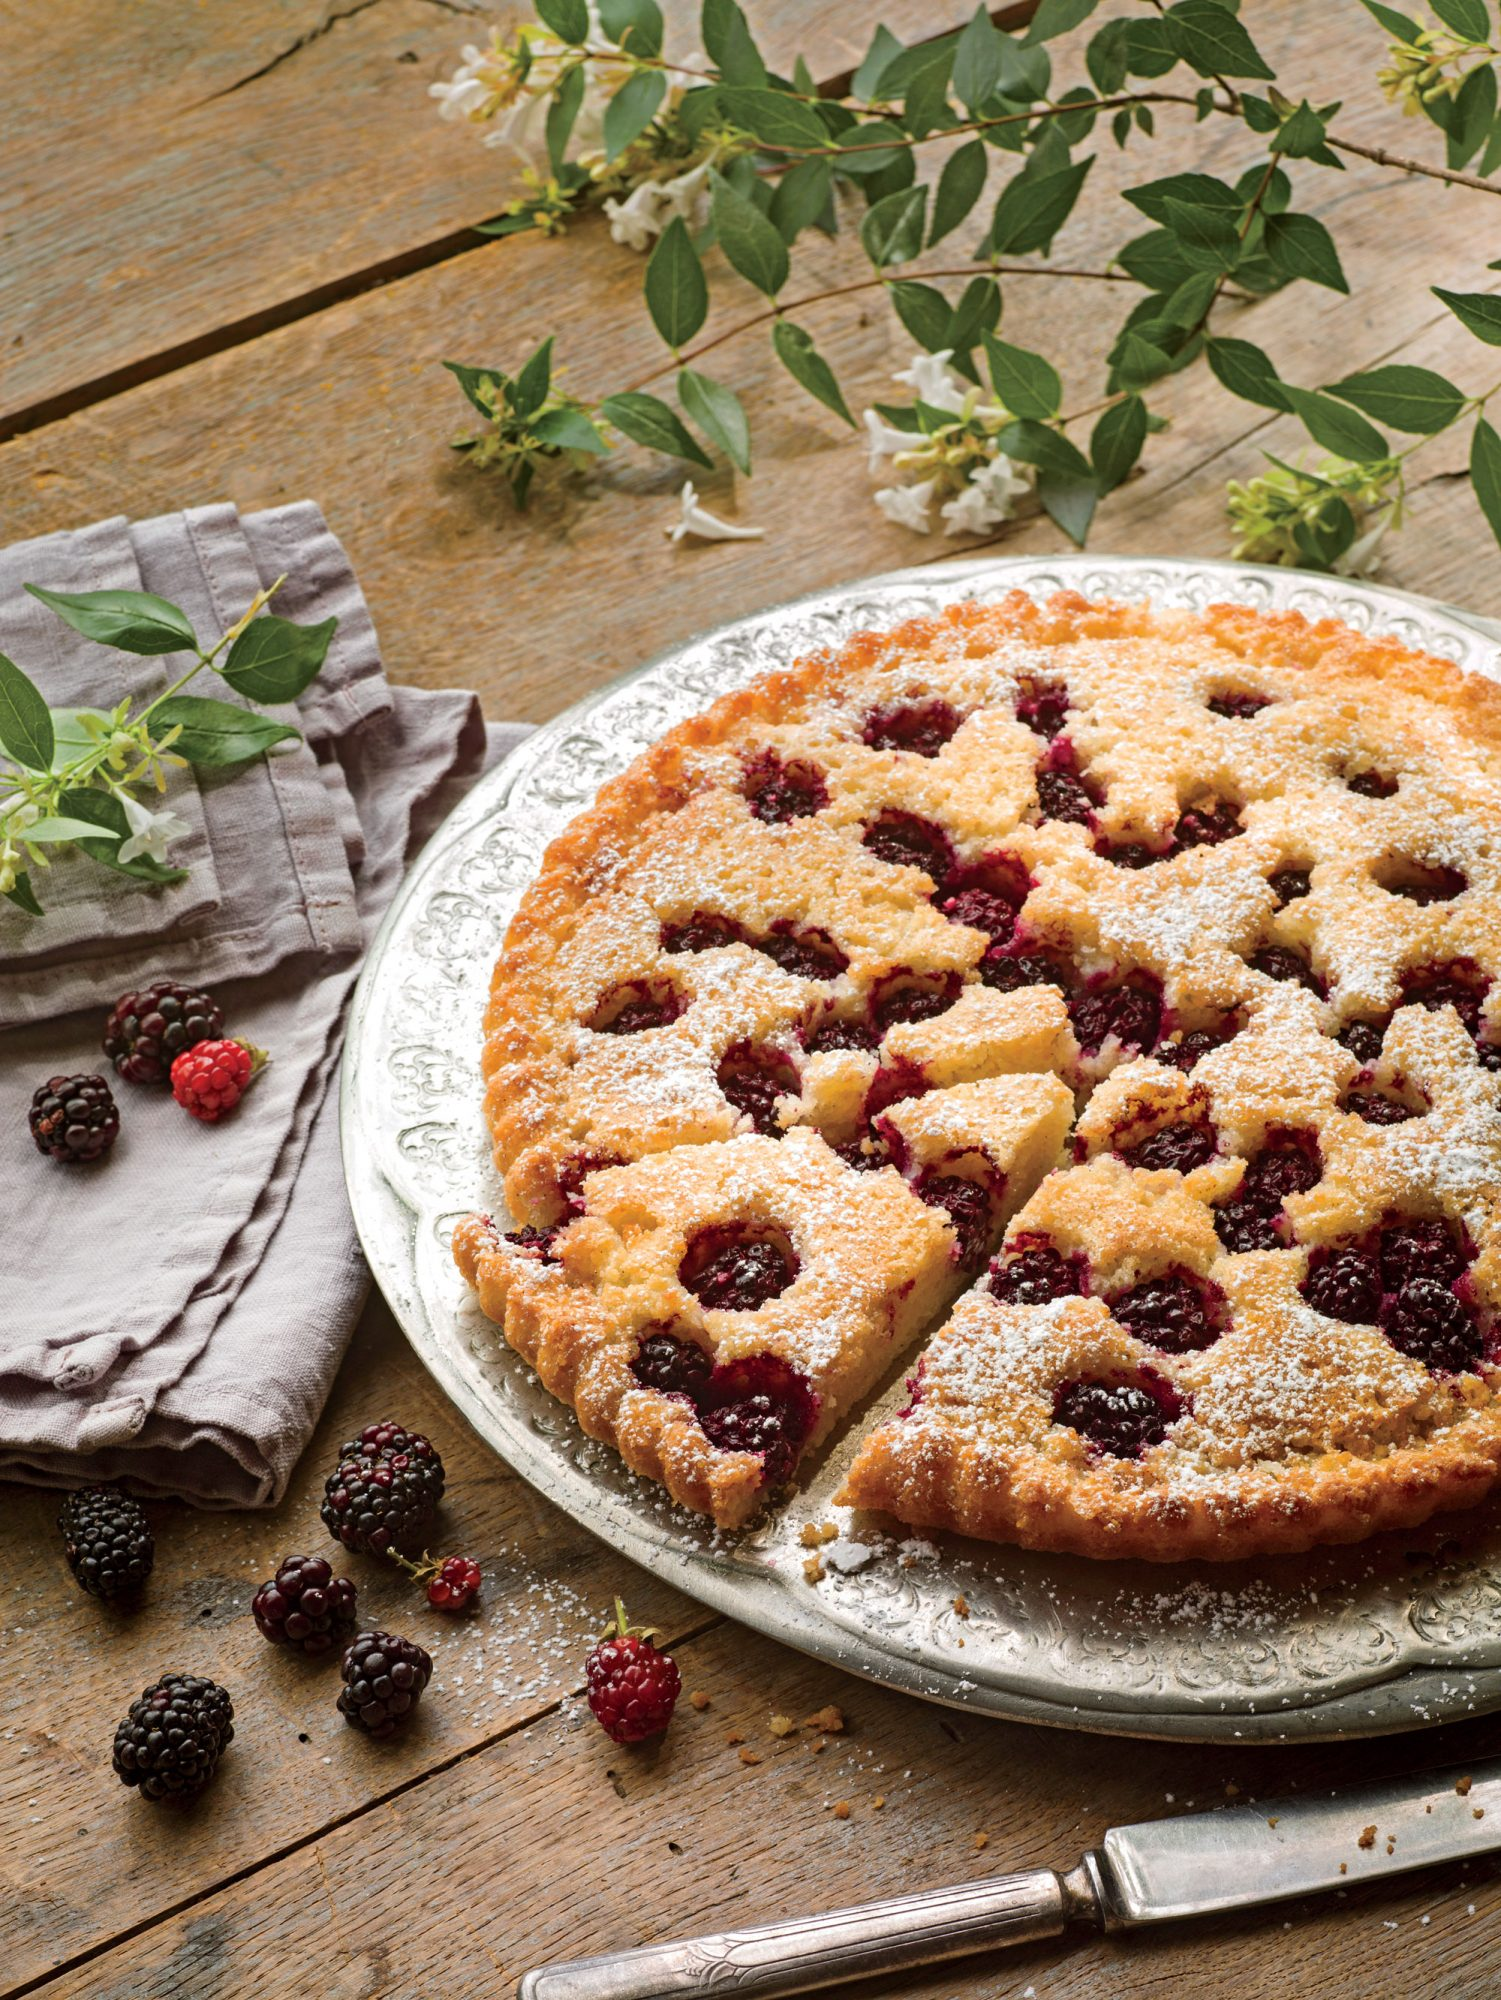 blackberry-browned-butter-and-almond-tart